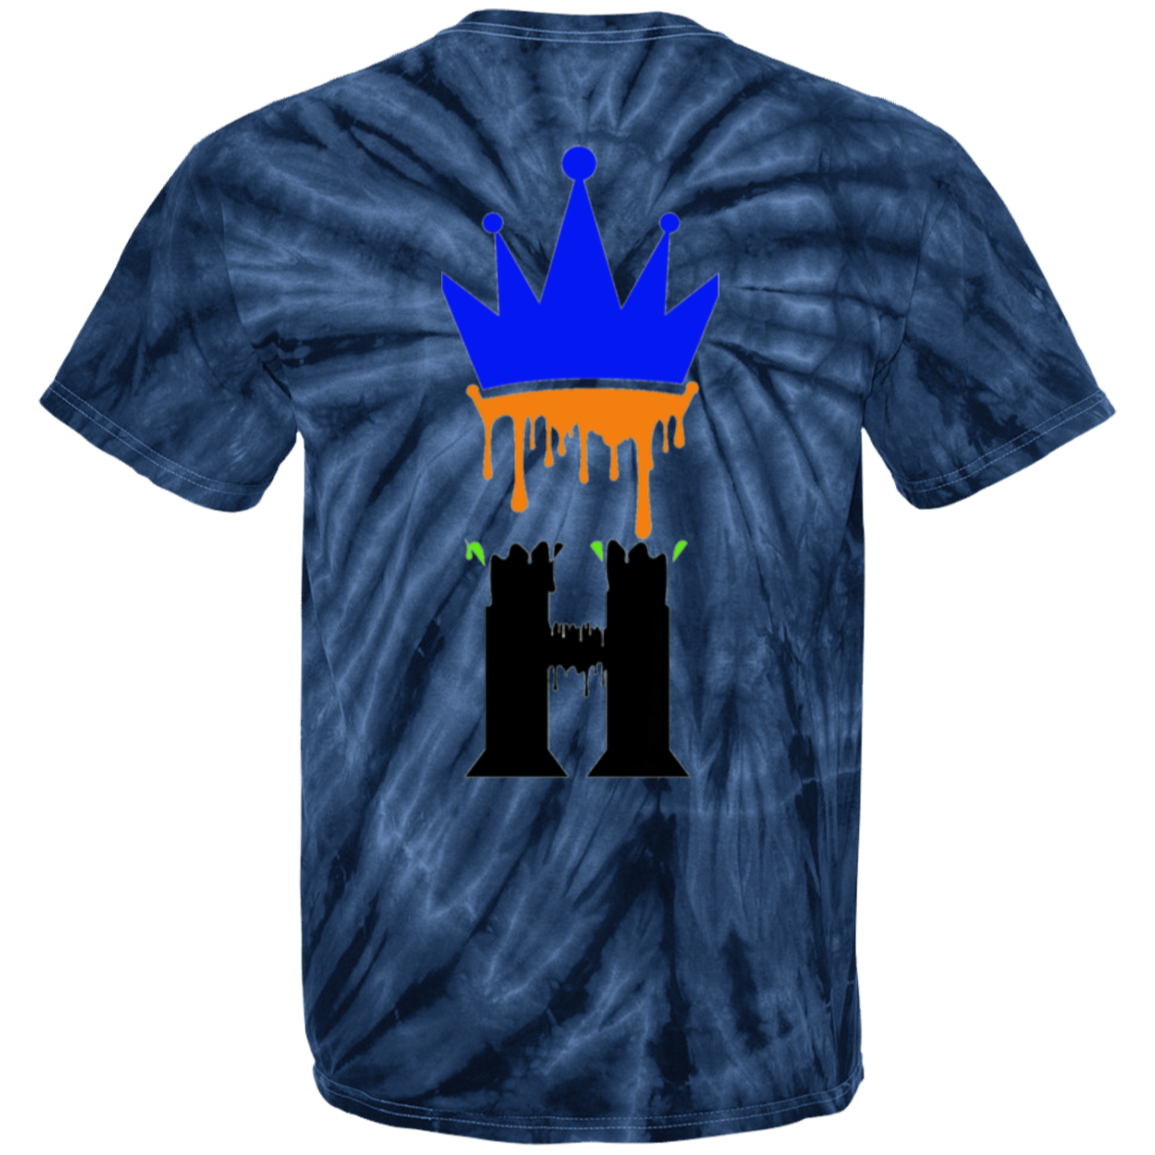 Splash Fit Tie Dye T-Shirt